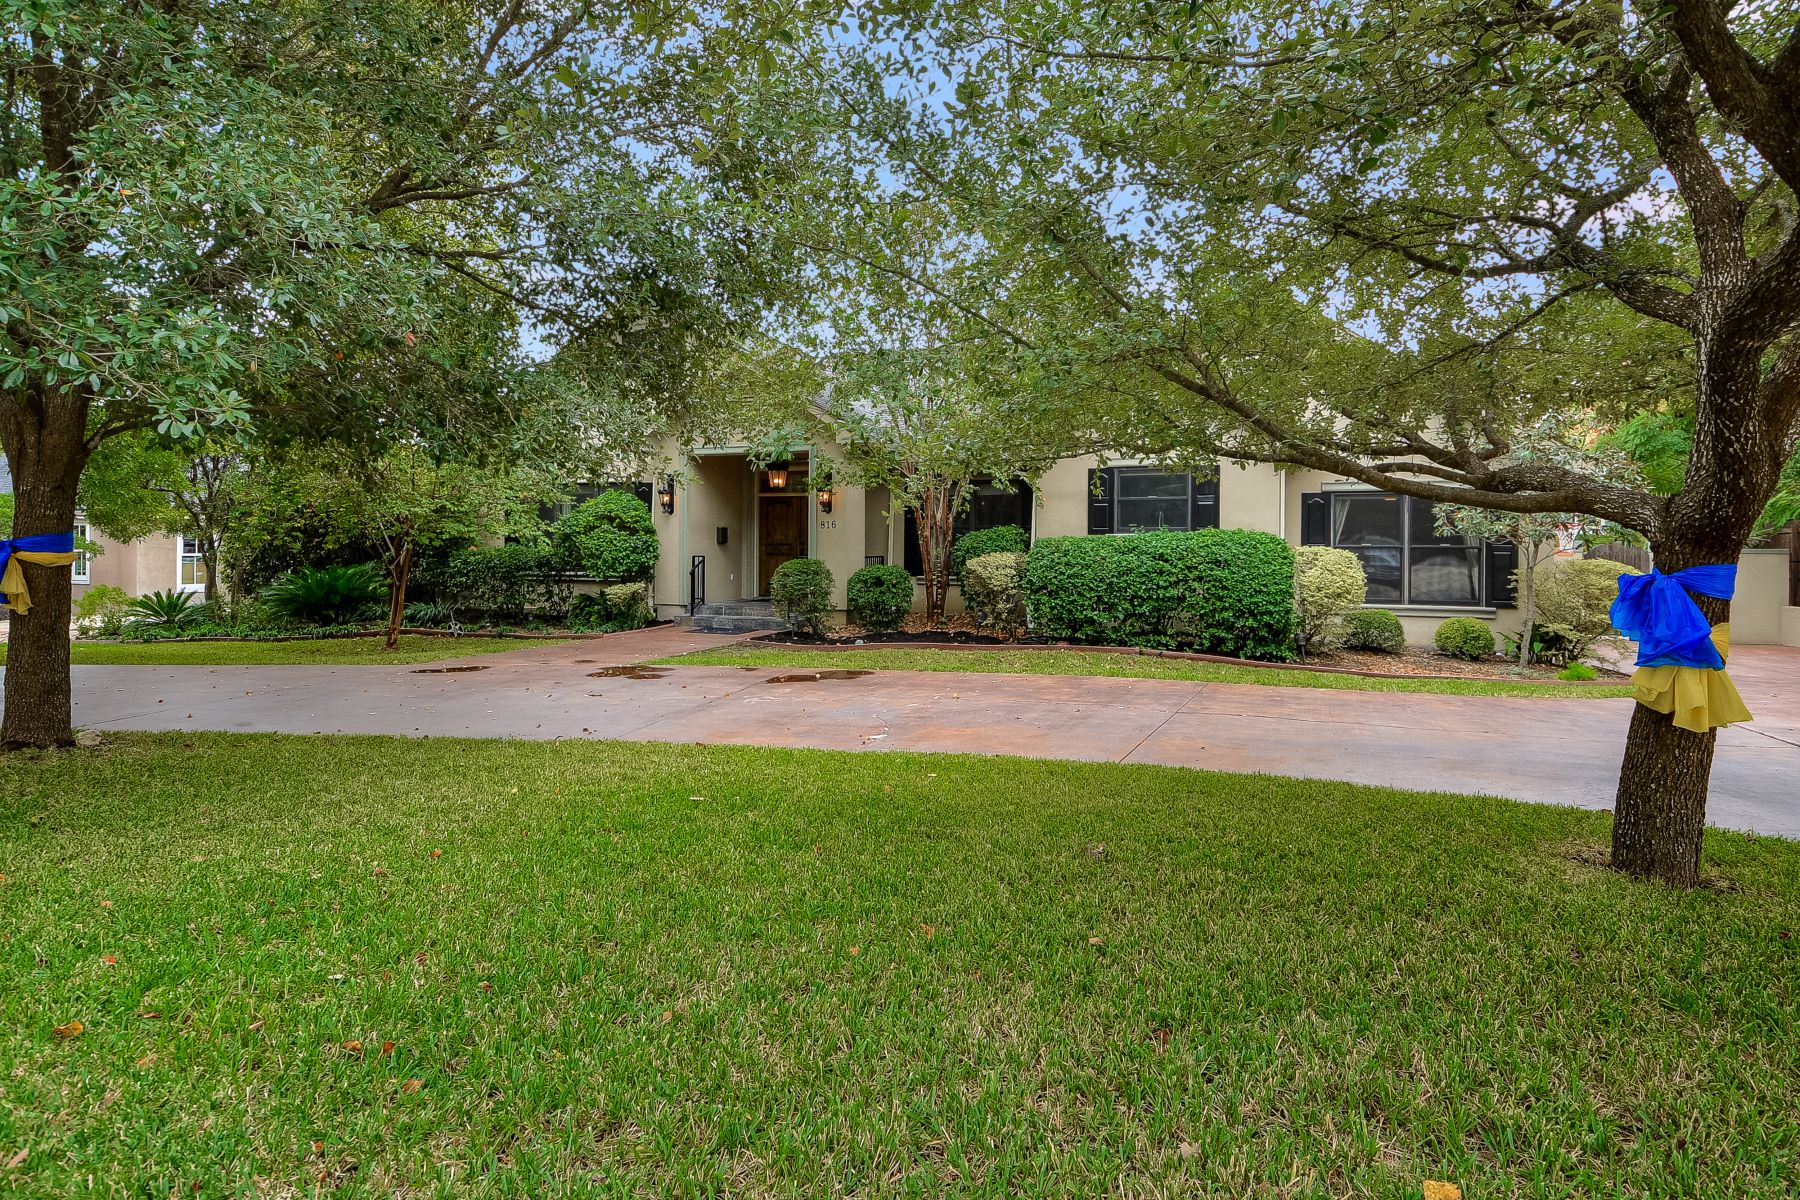 Additional photo for property listing at 816 Garraty Road, San Antonio, TX 78209 816 Garraty Road San Antonio, Texas 78209 United States